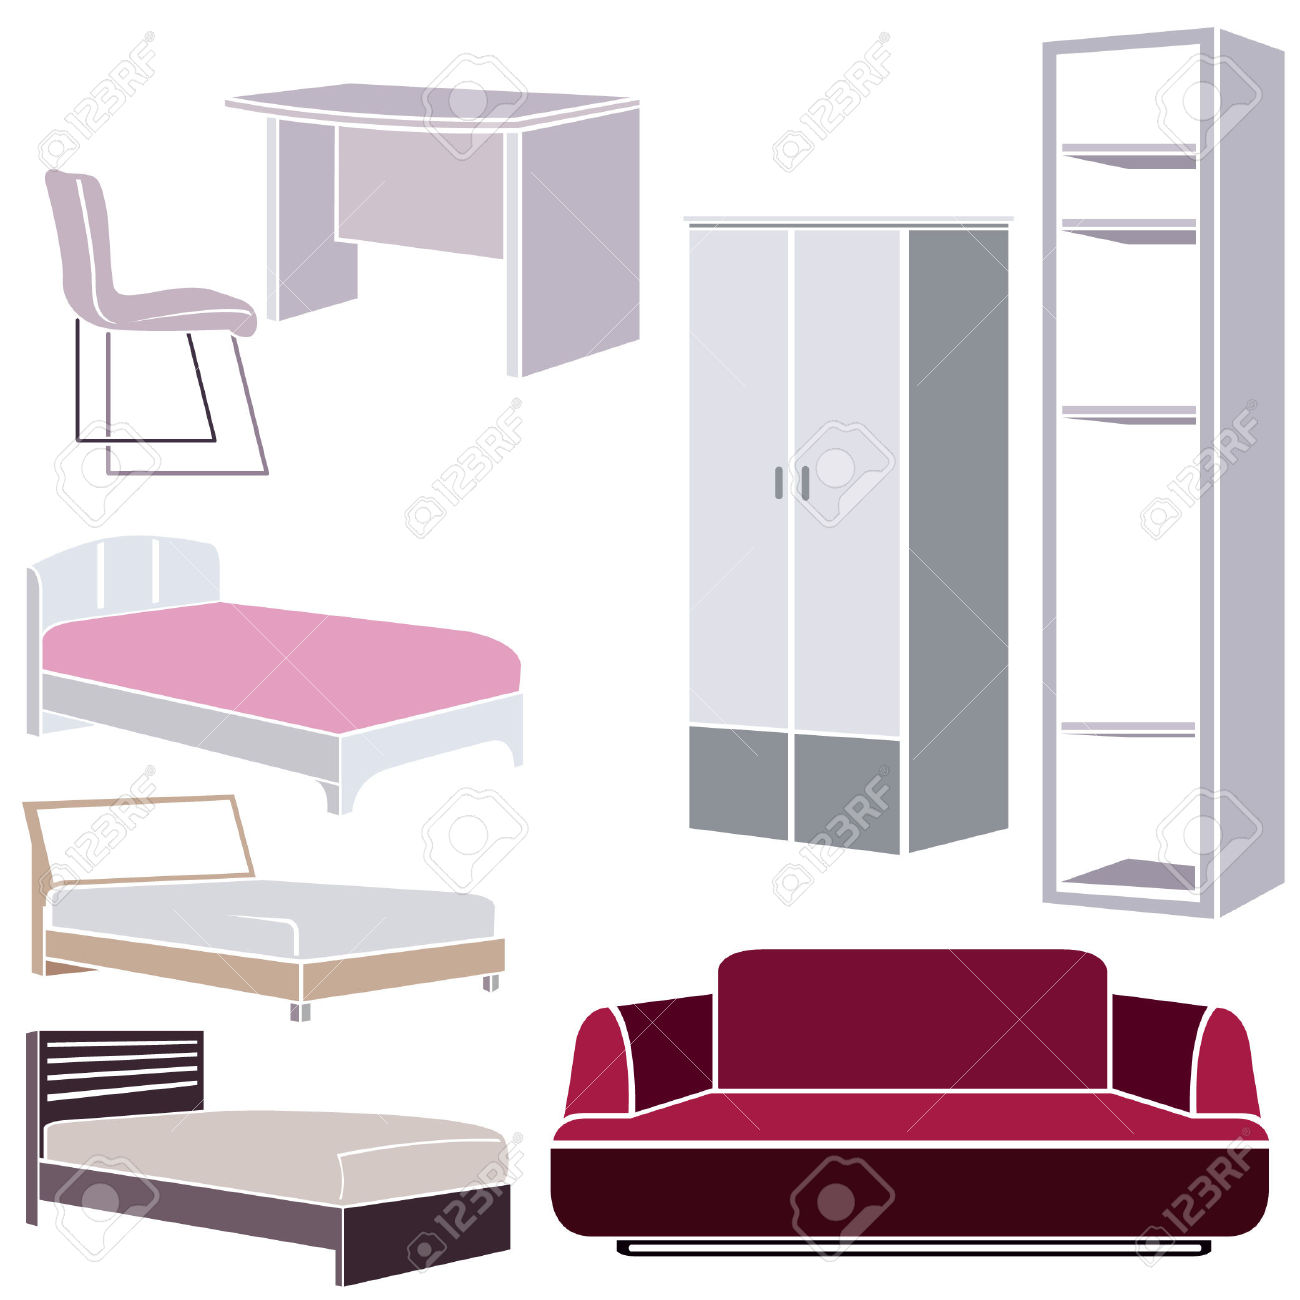 furniture clipart. interior design icons, furniture set royalty free cliparts. clipart s